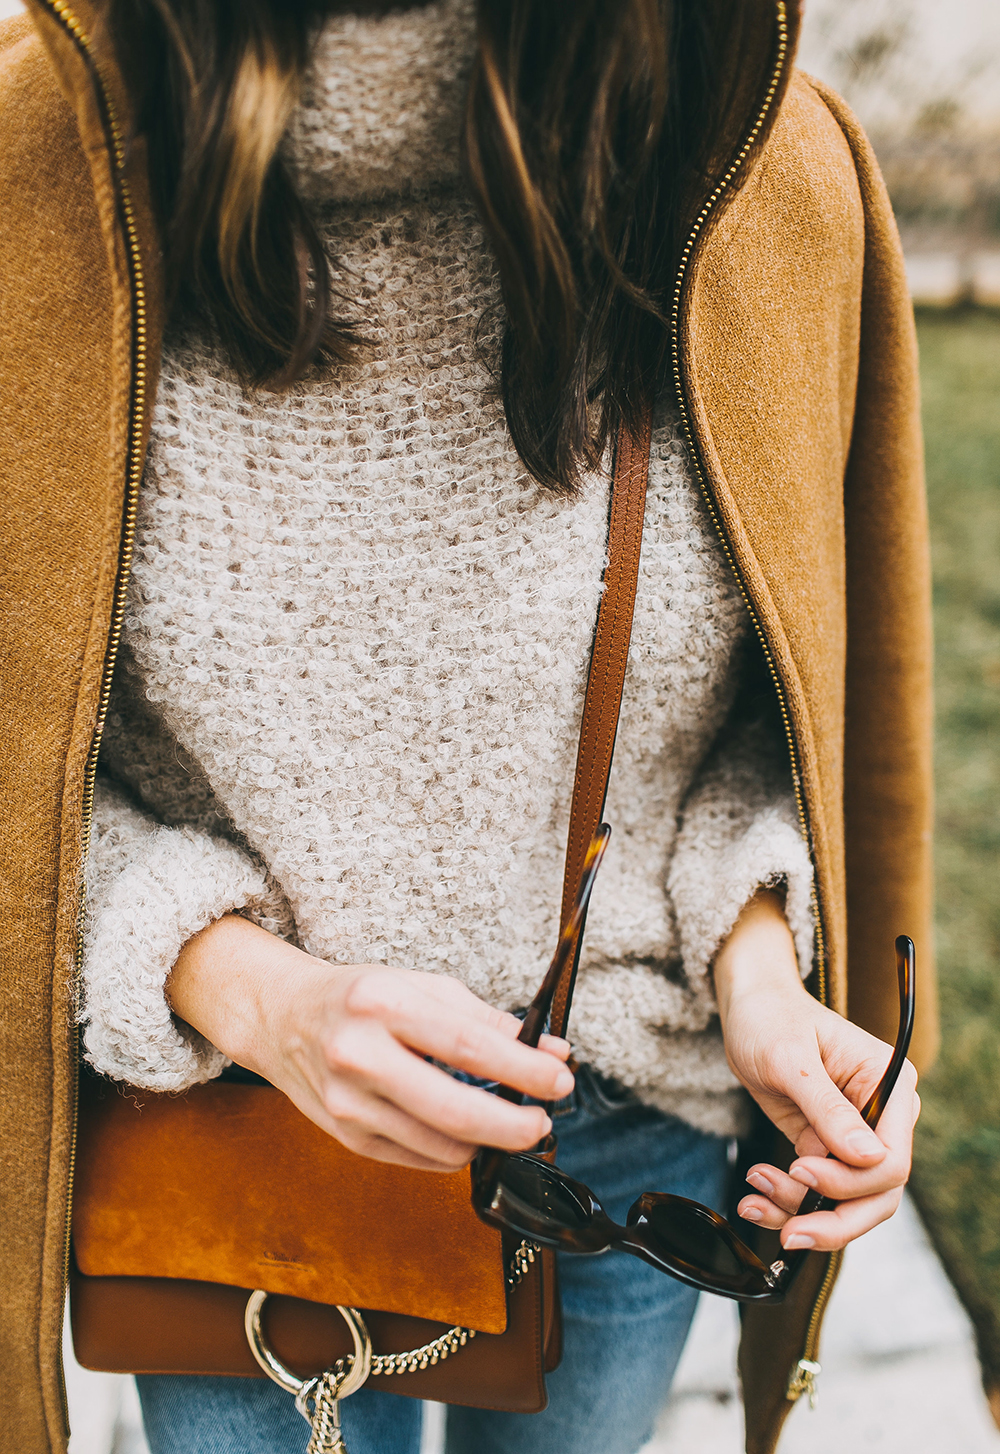 livvyland-blog-olivia-watson-austin-texas-fashion-style-blogger-free-people-oatmeal-knit-sweater-j-crew-camel-coat-chloe-faye-tobacco-handbag-1